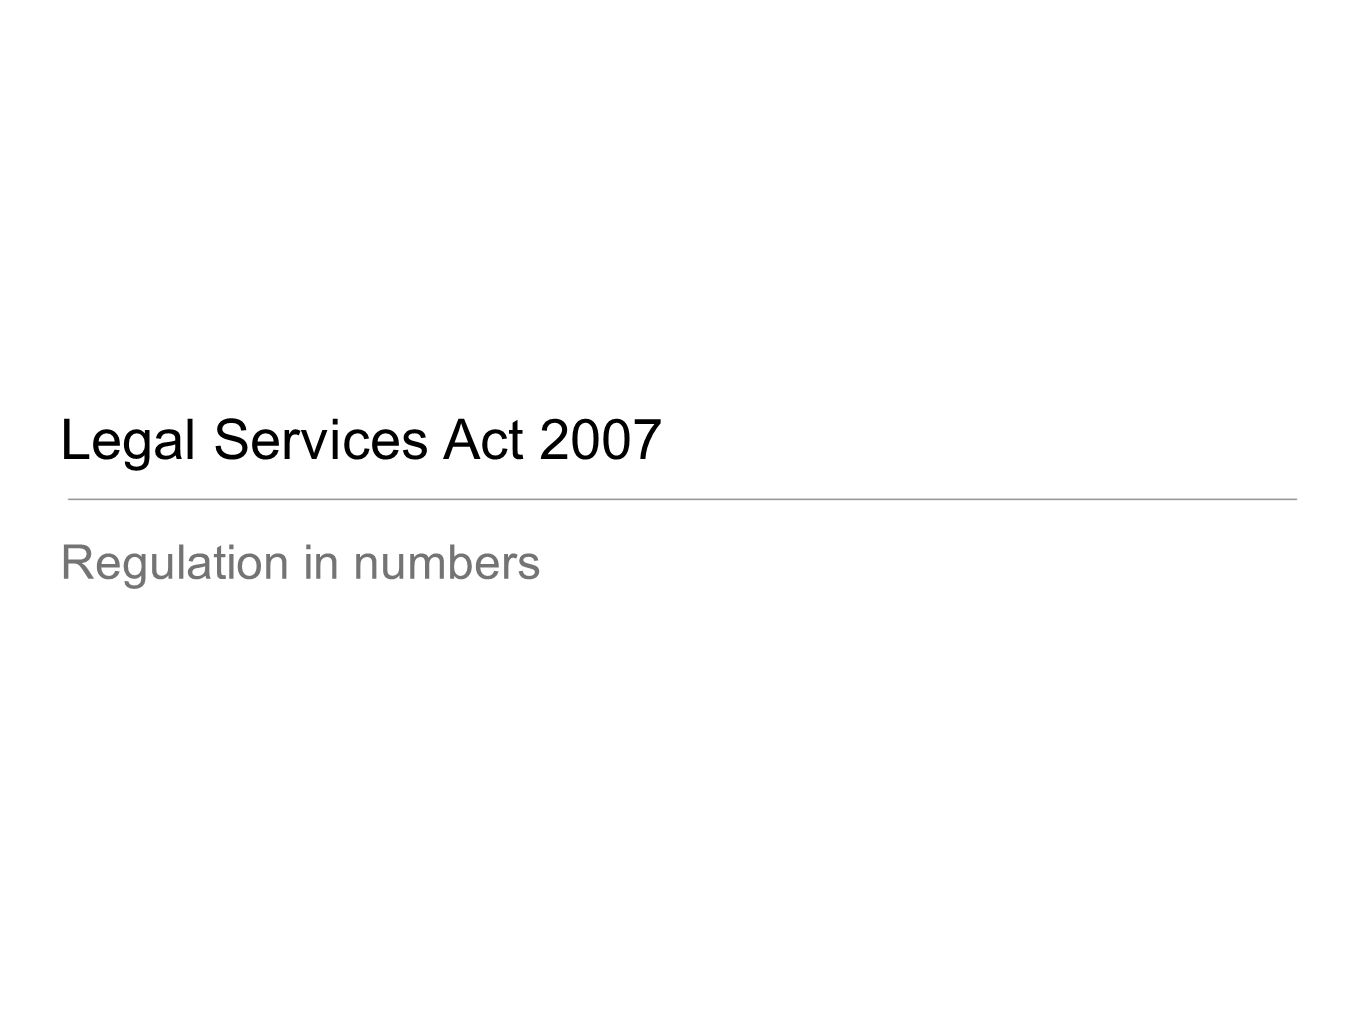 Legal Services Act 2007 Regulation in numbers